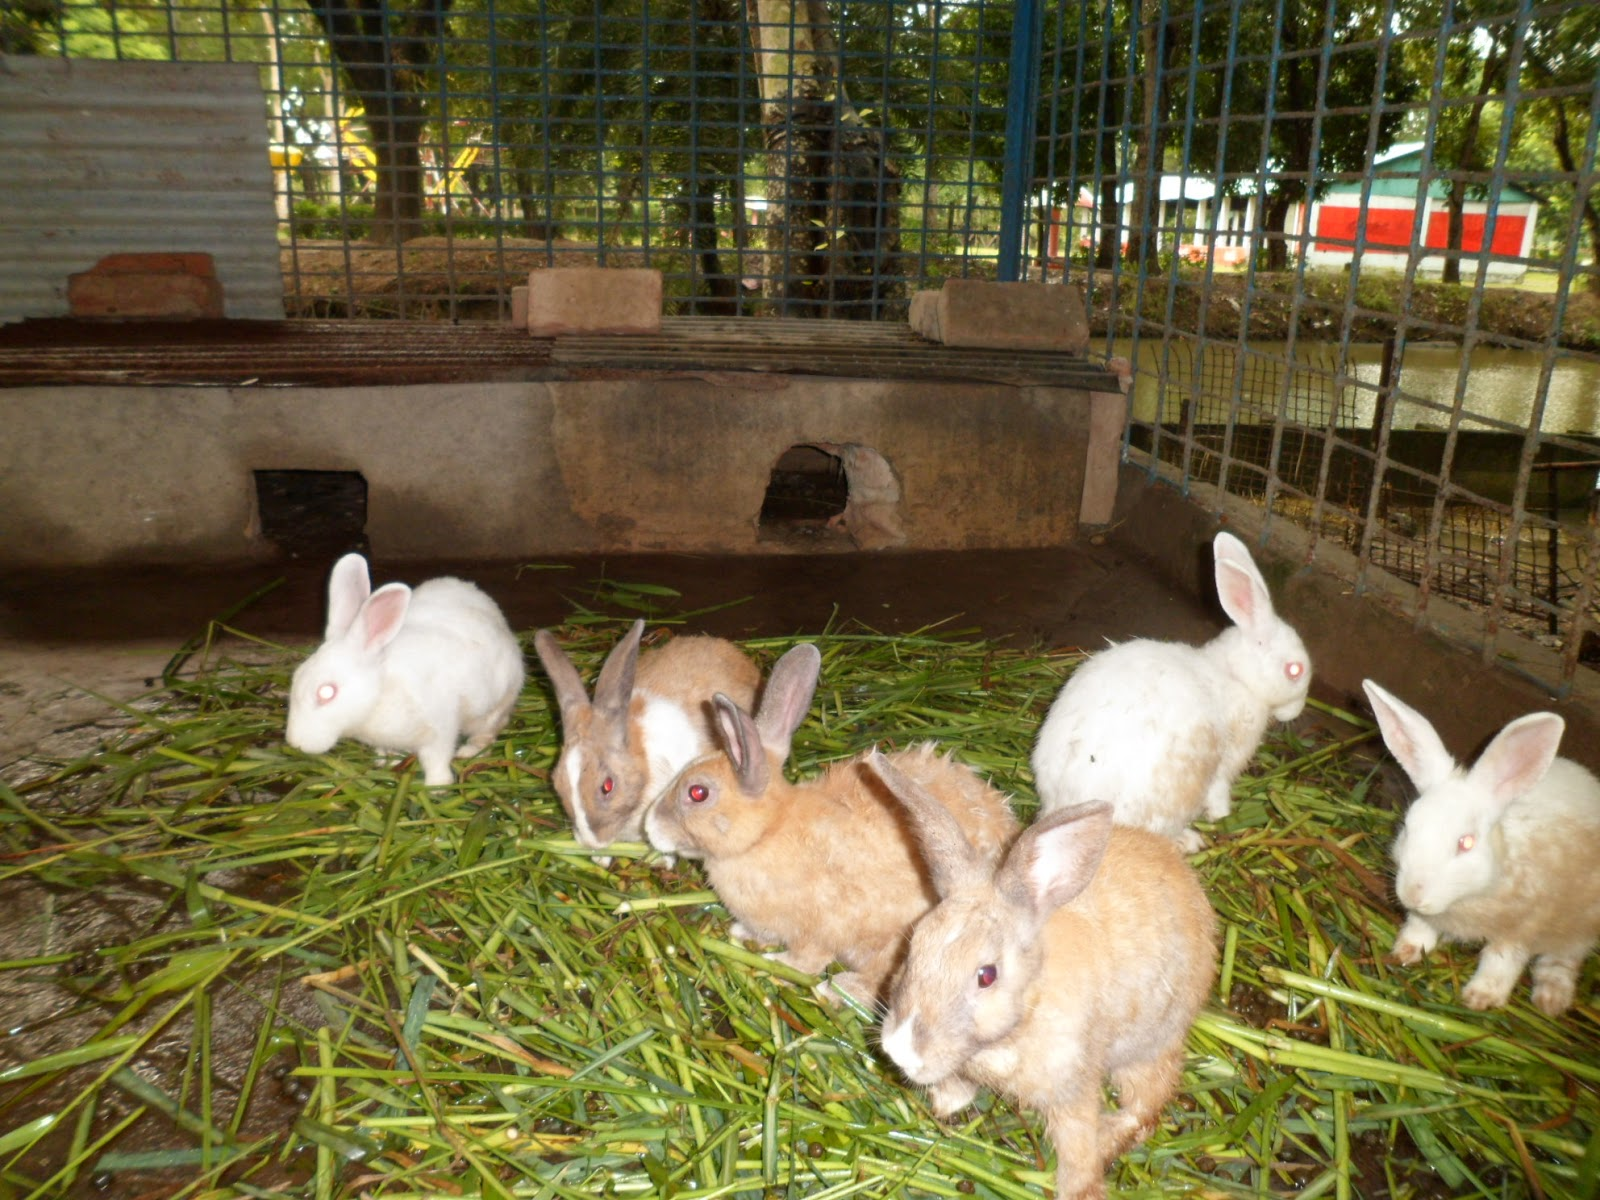 rabbit, rabbit farming, rabbit photo, picture of rabbit